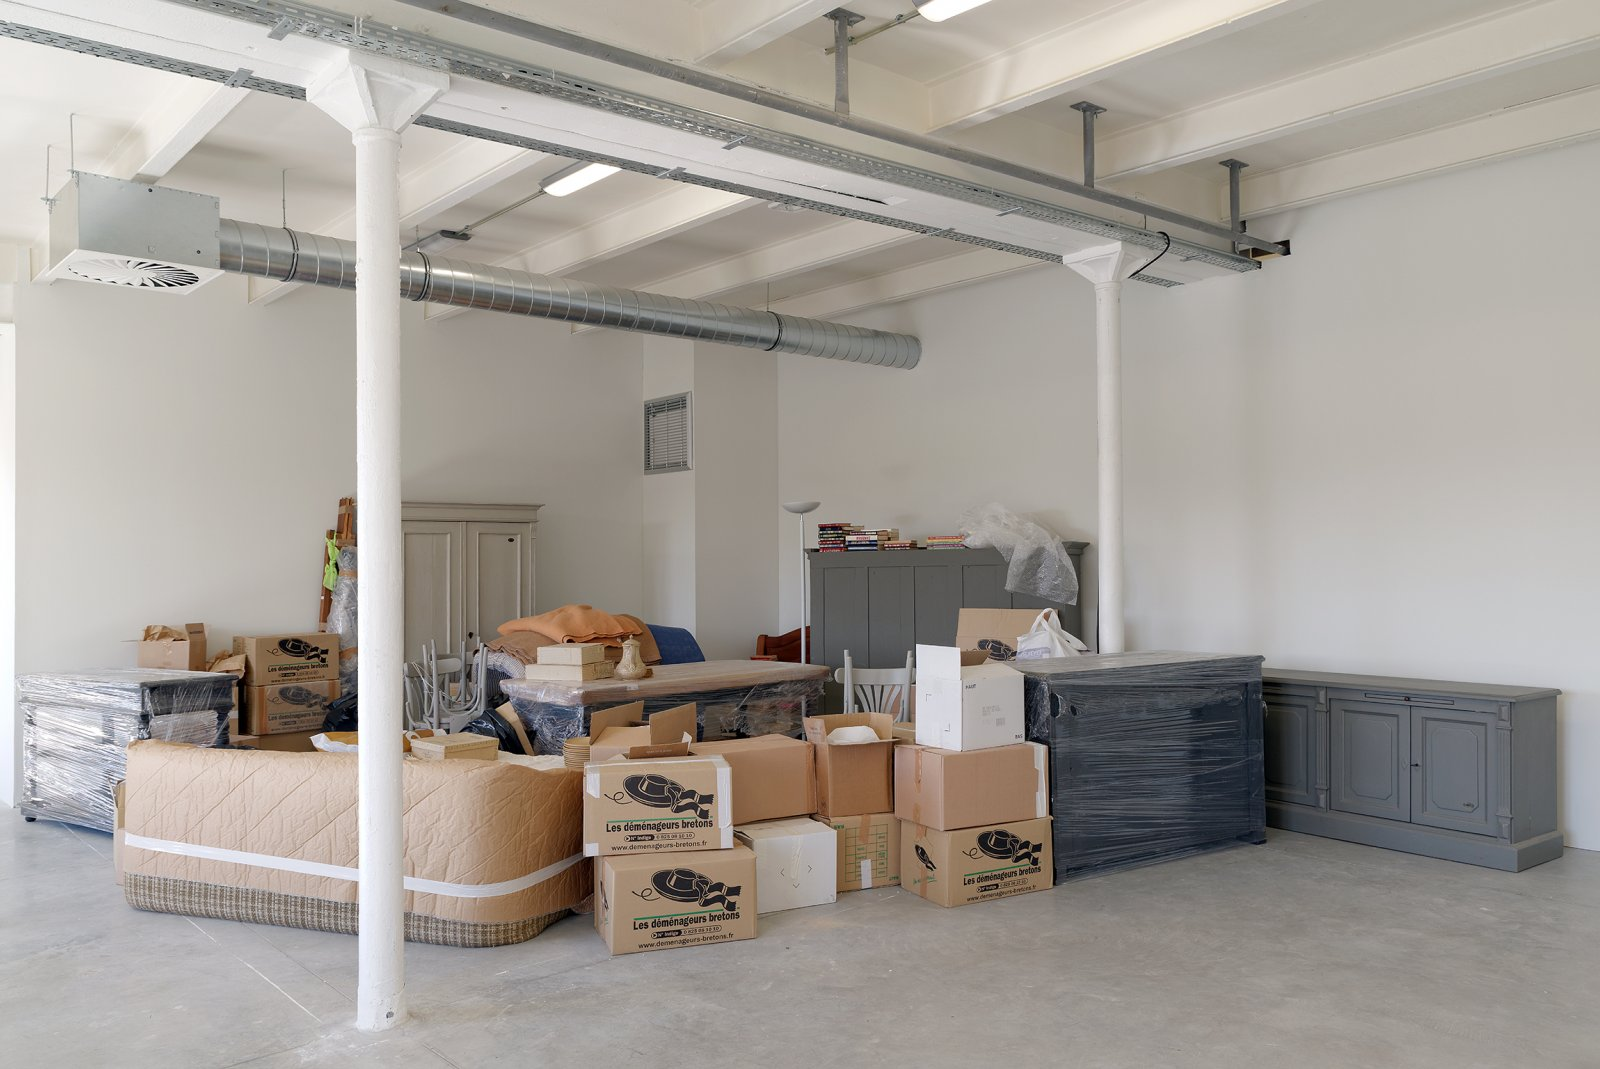 Liz Magor, One Bedroom Apartment, 1996, polyester resin, contents of a one-bedroom apartment, dimensions variable. Installation view, NoFear,NoShame,NoConfusion,TriangleFrance,Marseille,France, 2013 by Liz Magor